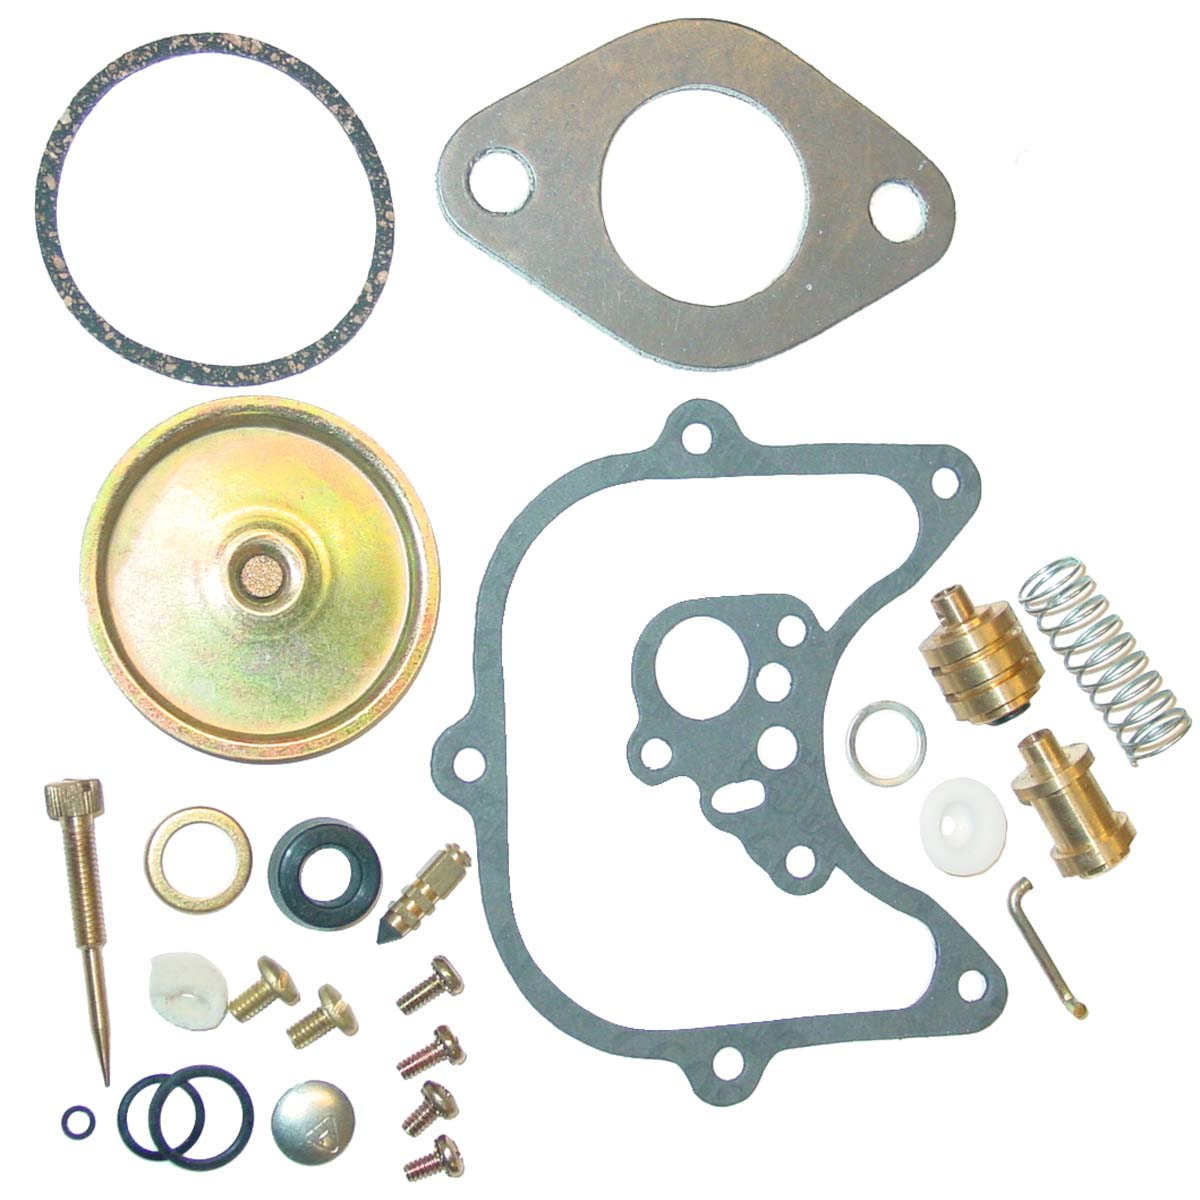 Ford N Tractor Parts For Series Tractors 8n 2n And 3000 Wiring Harness Economy